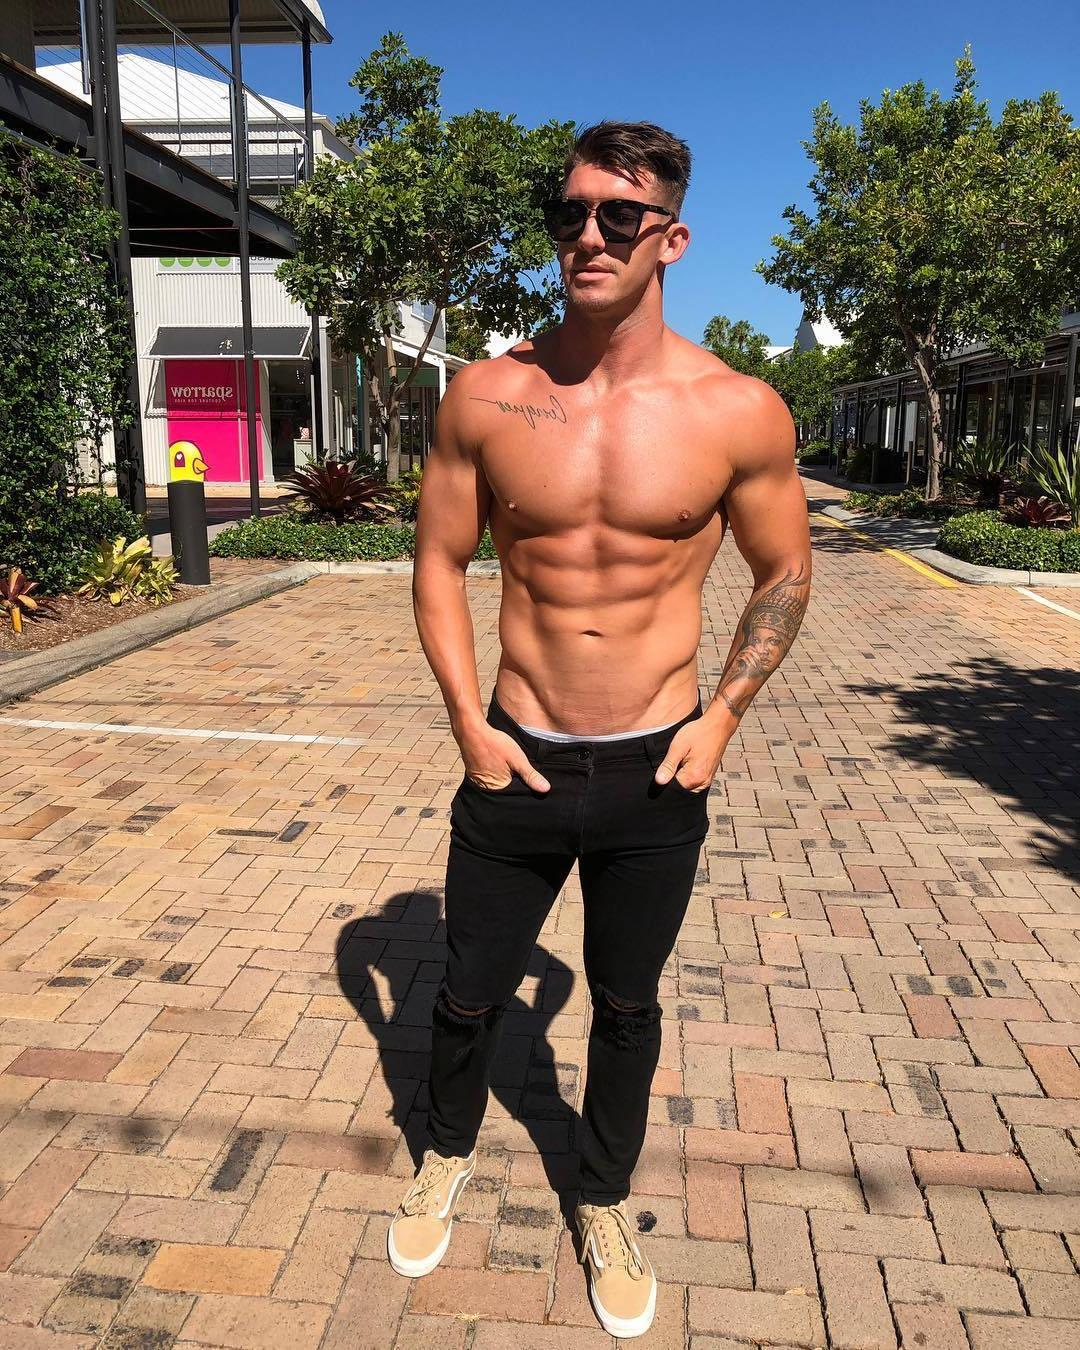 shirtless-muscle-bro-blake-williamson-pictures-black-sunglasses-arm-tattoo